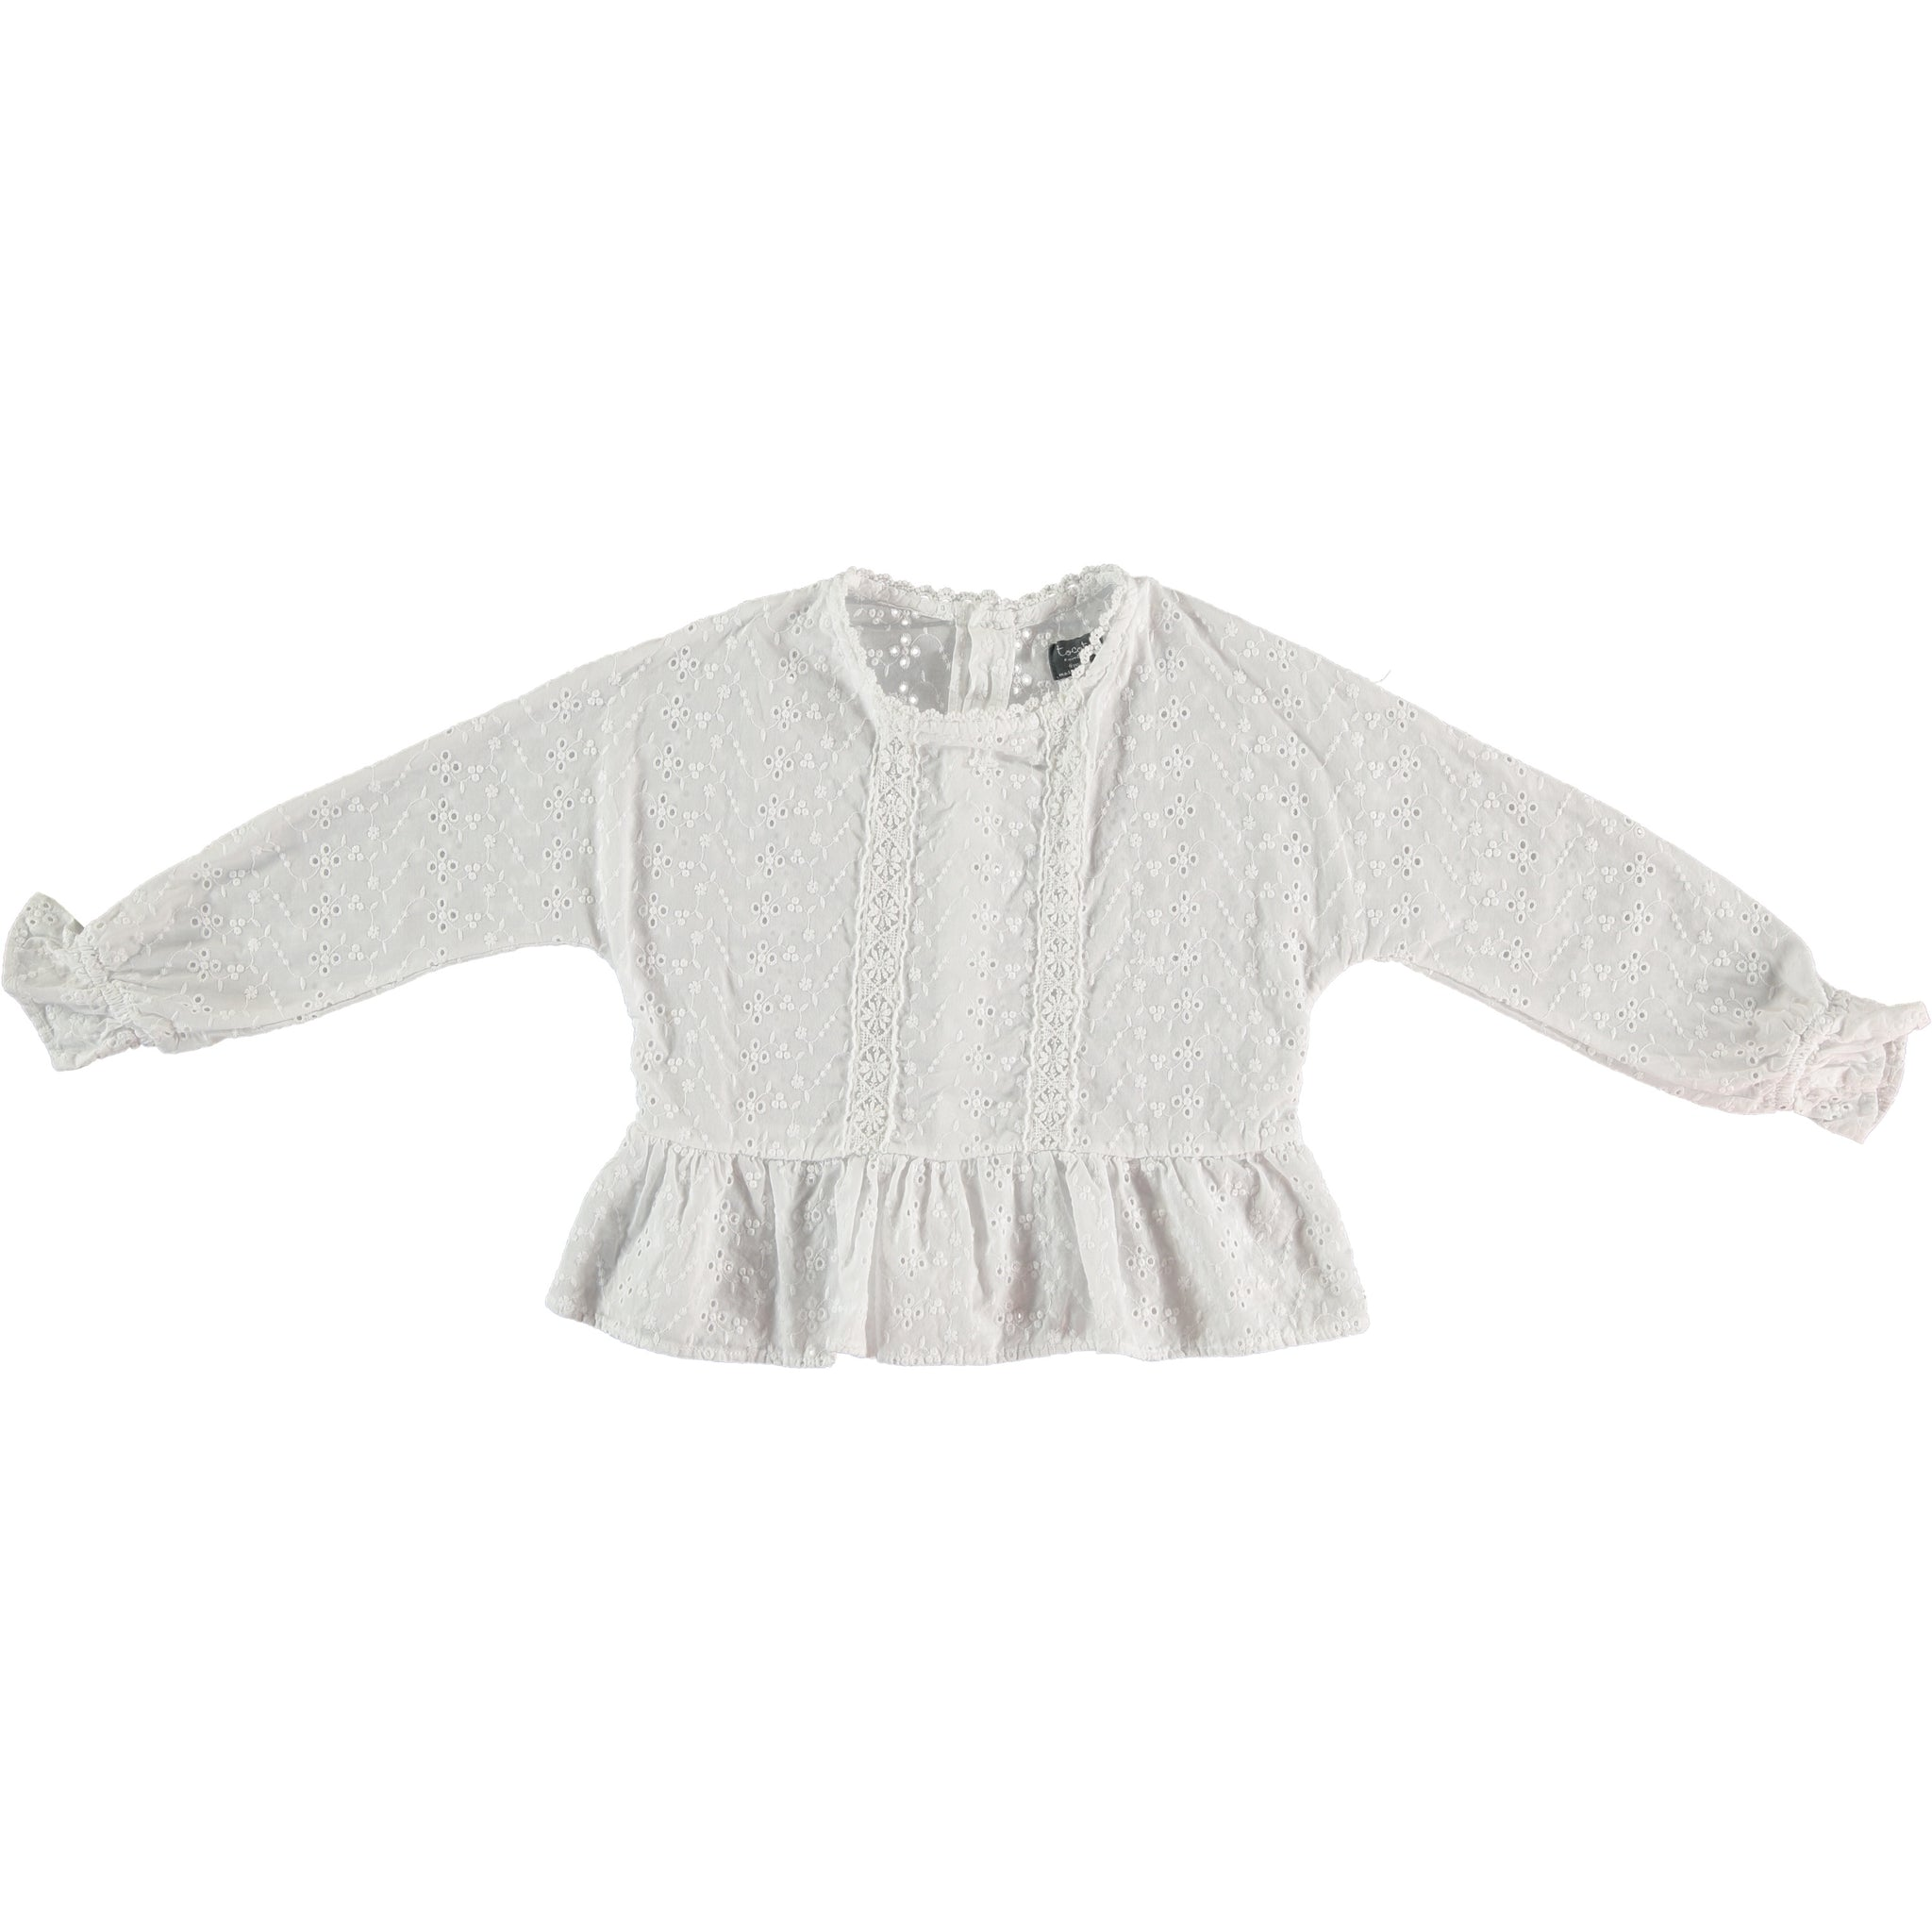 TOCOTO VINTAGE SWISS EMBROIDERED LONG-SLEEVED BLOUSE WITH LACE AND FLOU